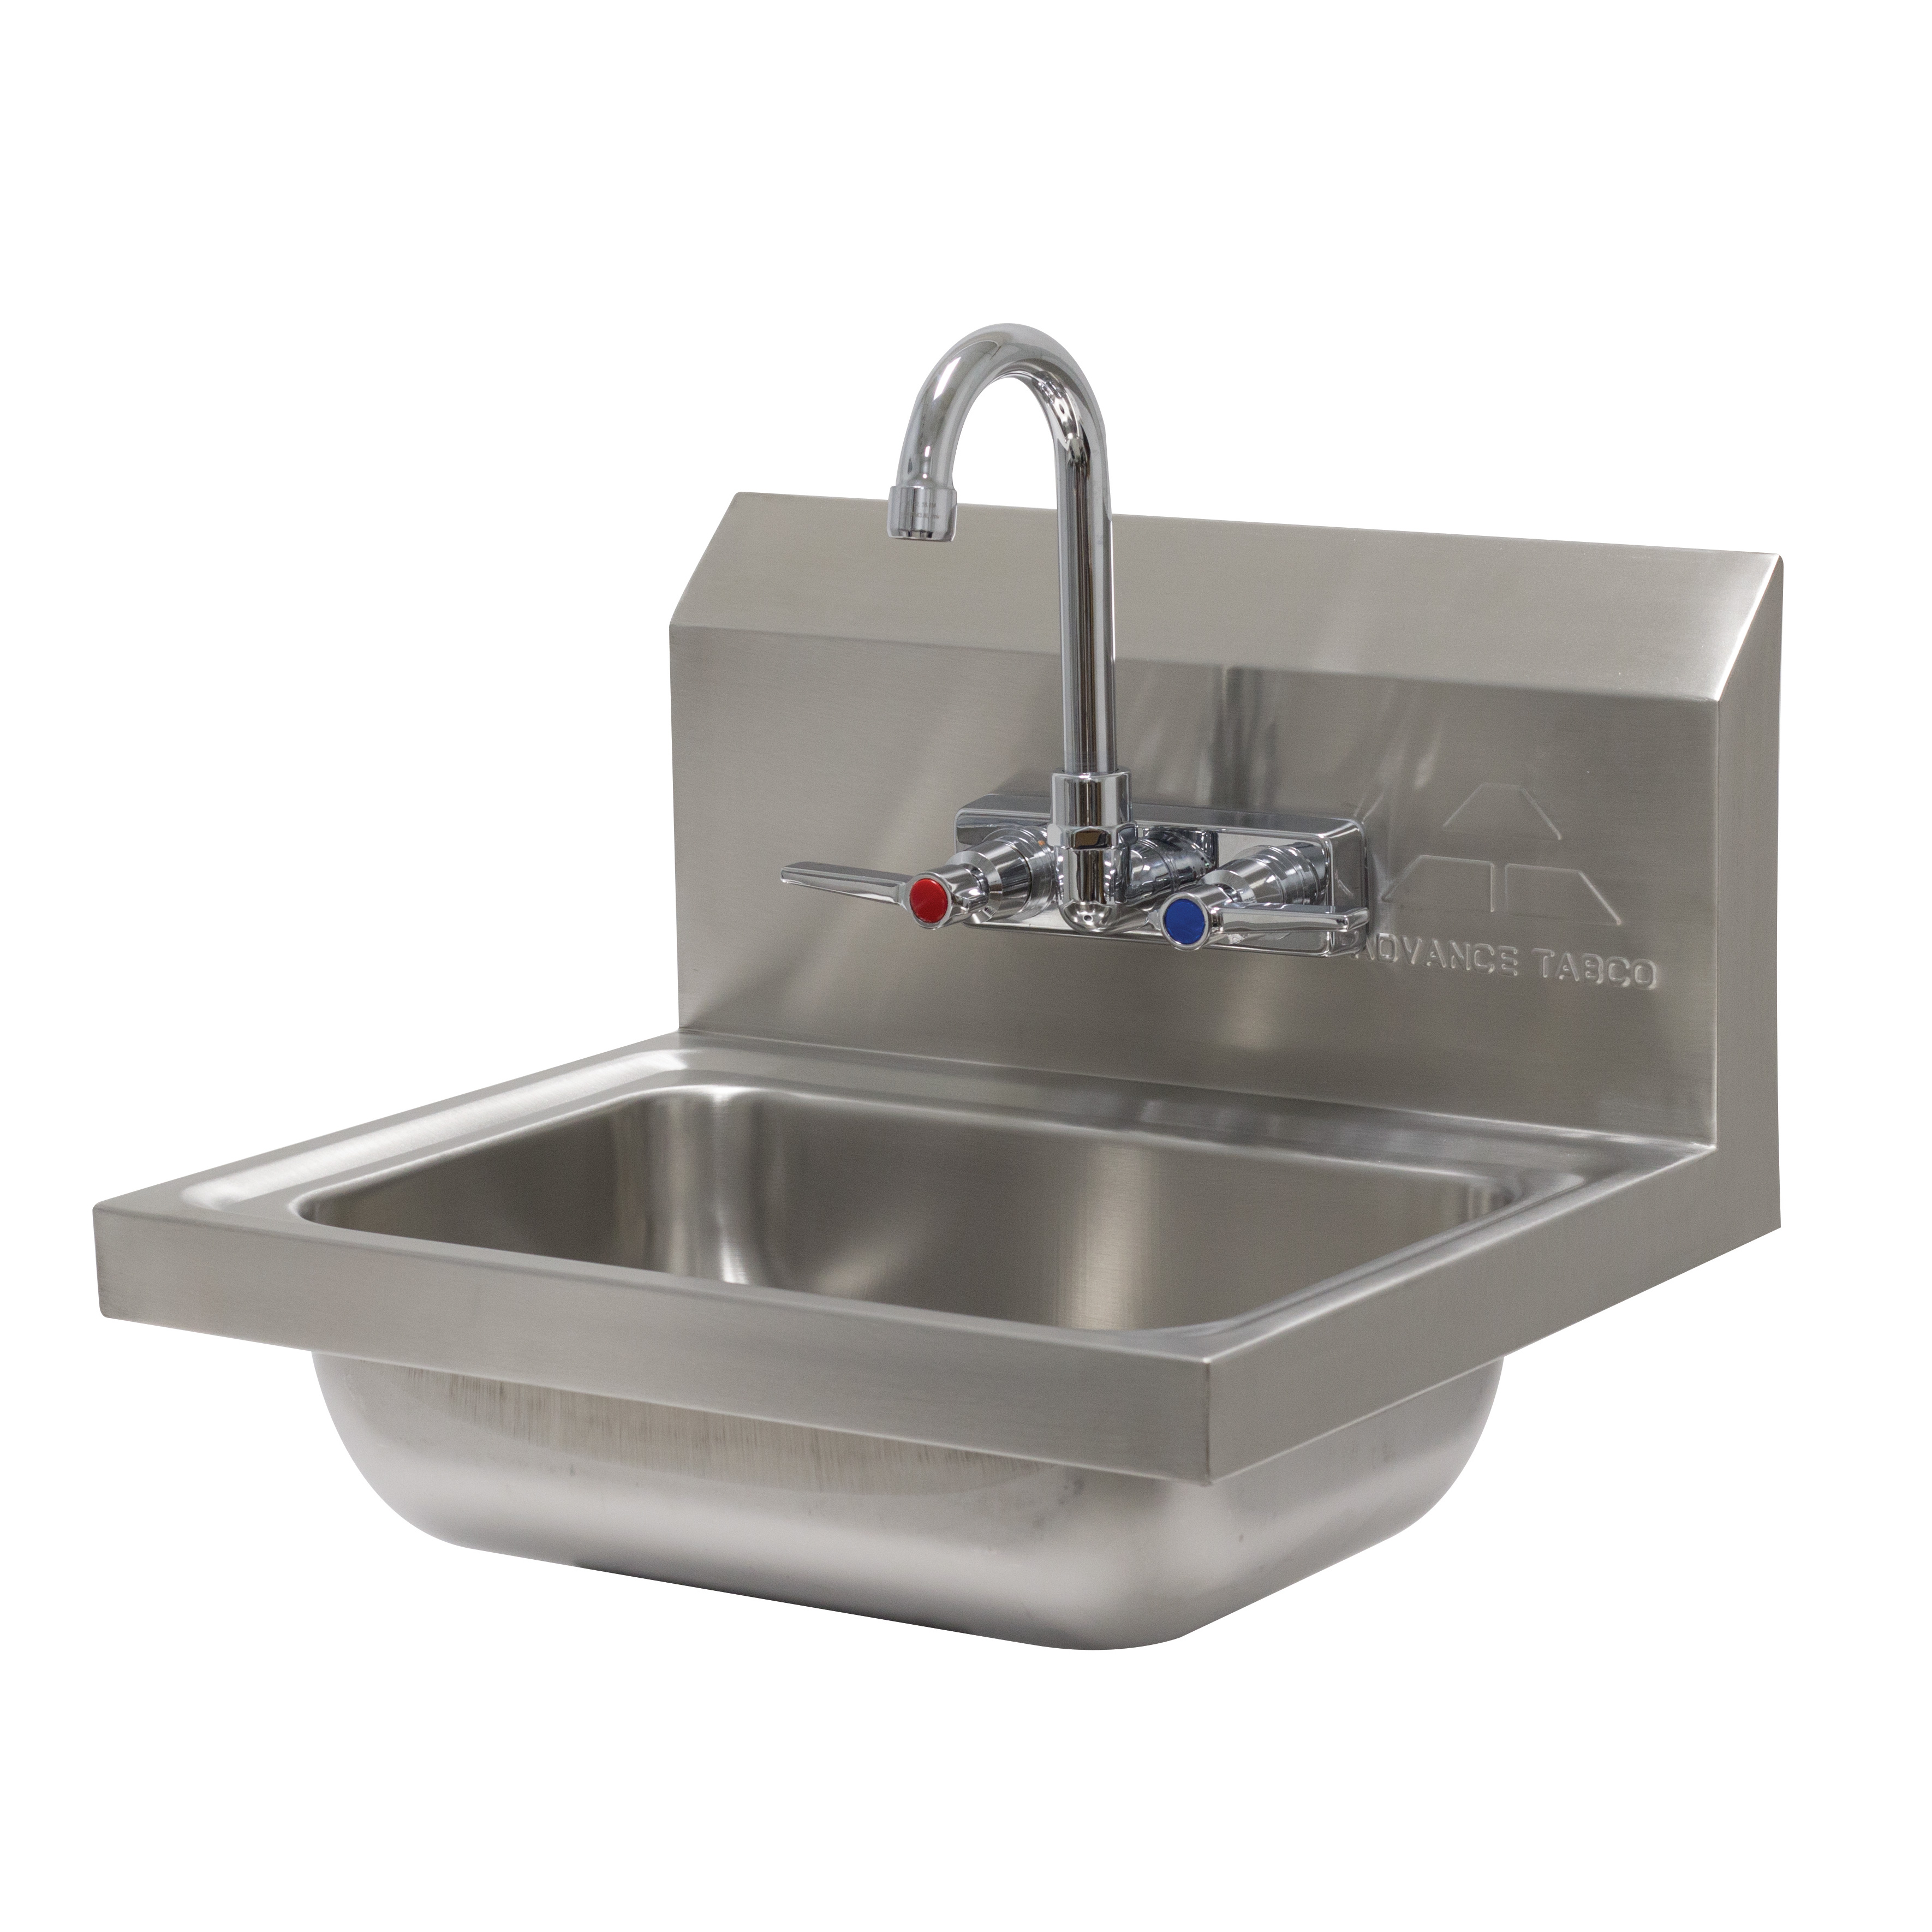 7-PS-60-1X Advance Tabco sink, hand